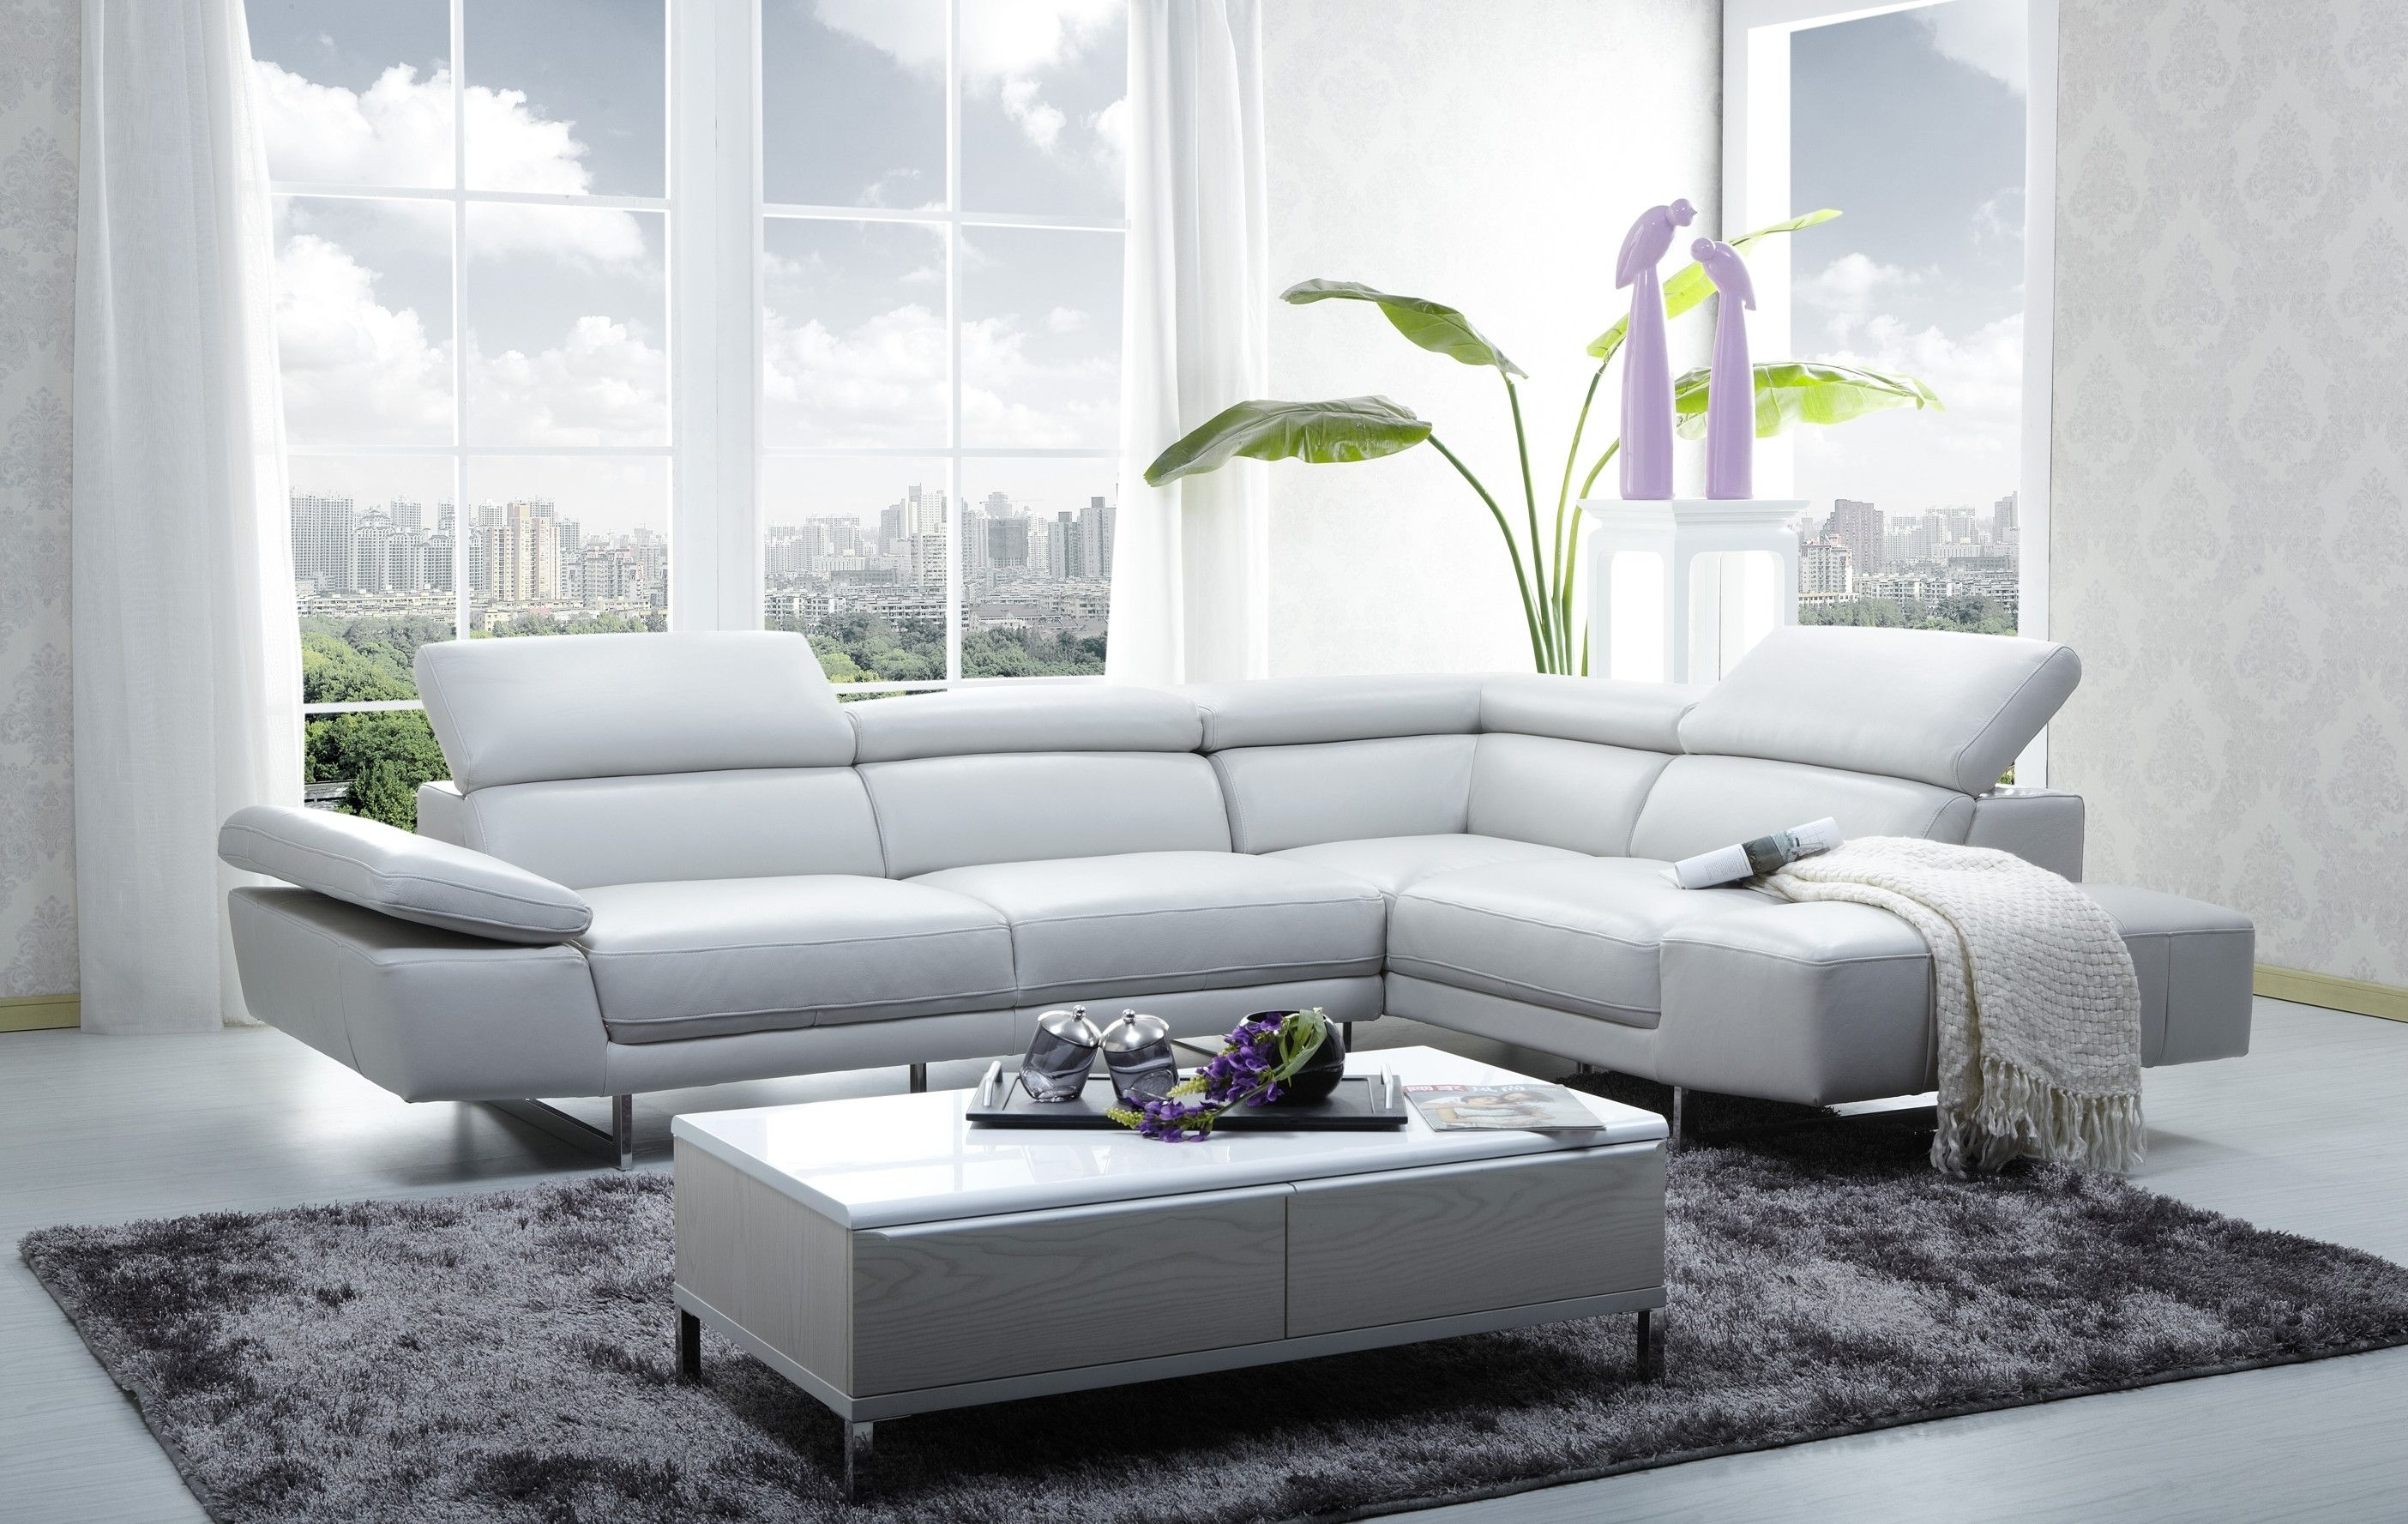 Modern Sofa Kijiji Calgary Remarkable Sectional Couch Ethan Allen intended for Well-known Knoxville Tn Sectional Sofas